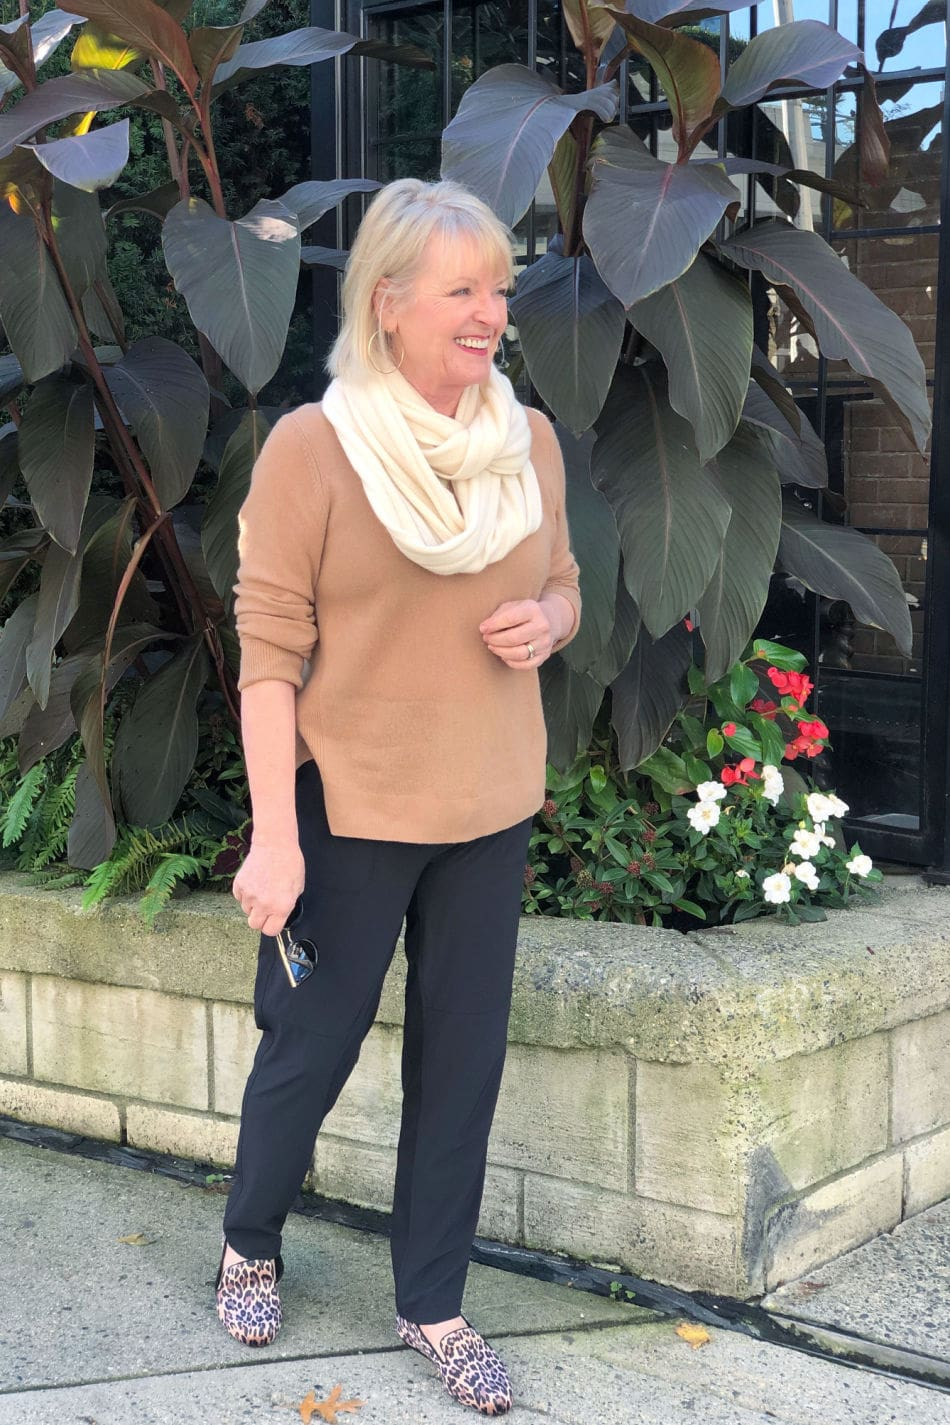 fashion blogger jennifer connolly of a well styled life wearing casual outfit of ahlogen camel sweater, black zella pants and caslon leopard shoes